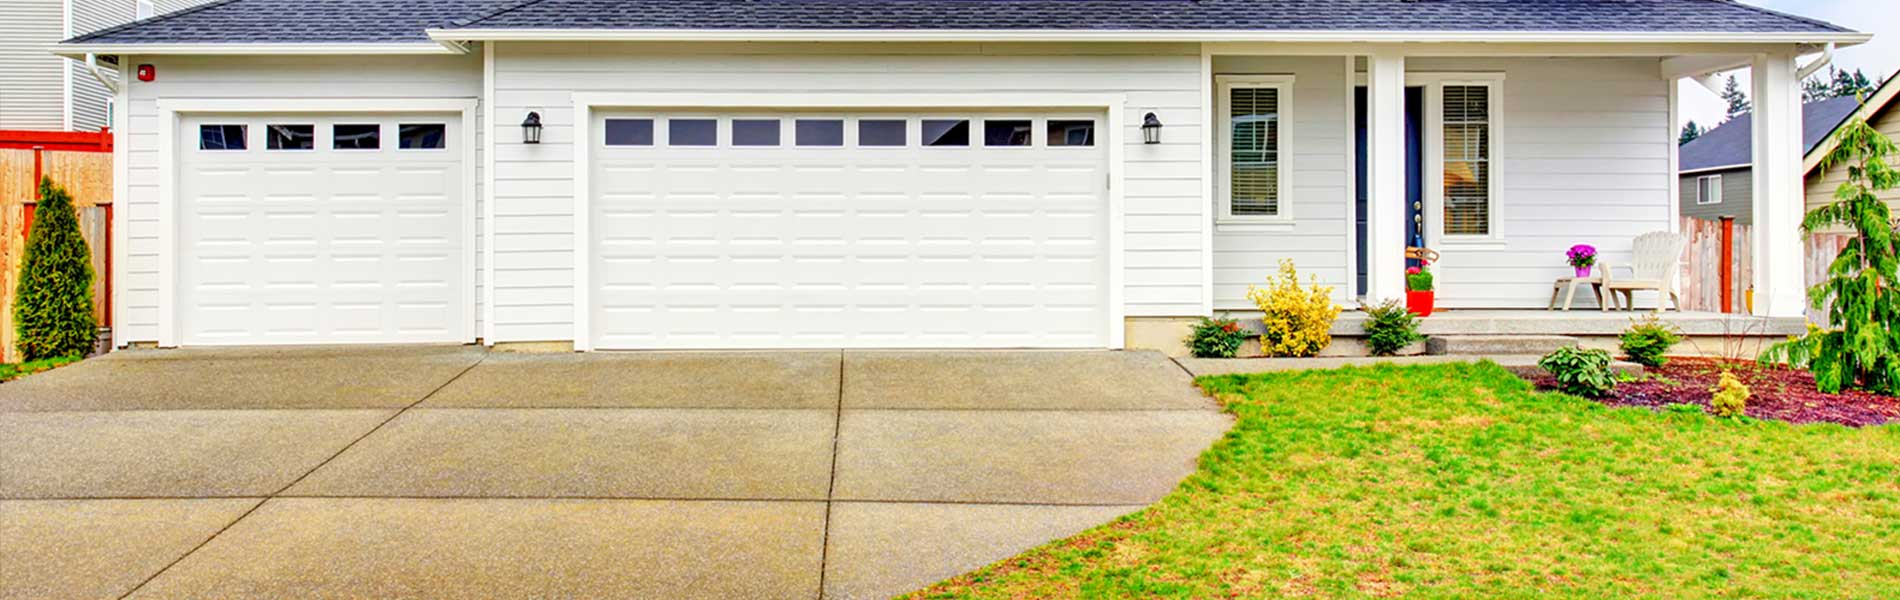 Garage Door 24 Hours Repairs, San Leandro, CA 510-229-4816